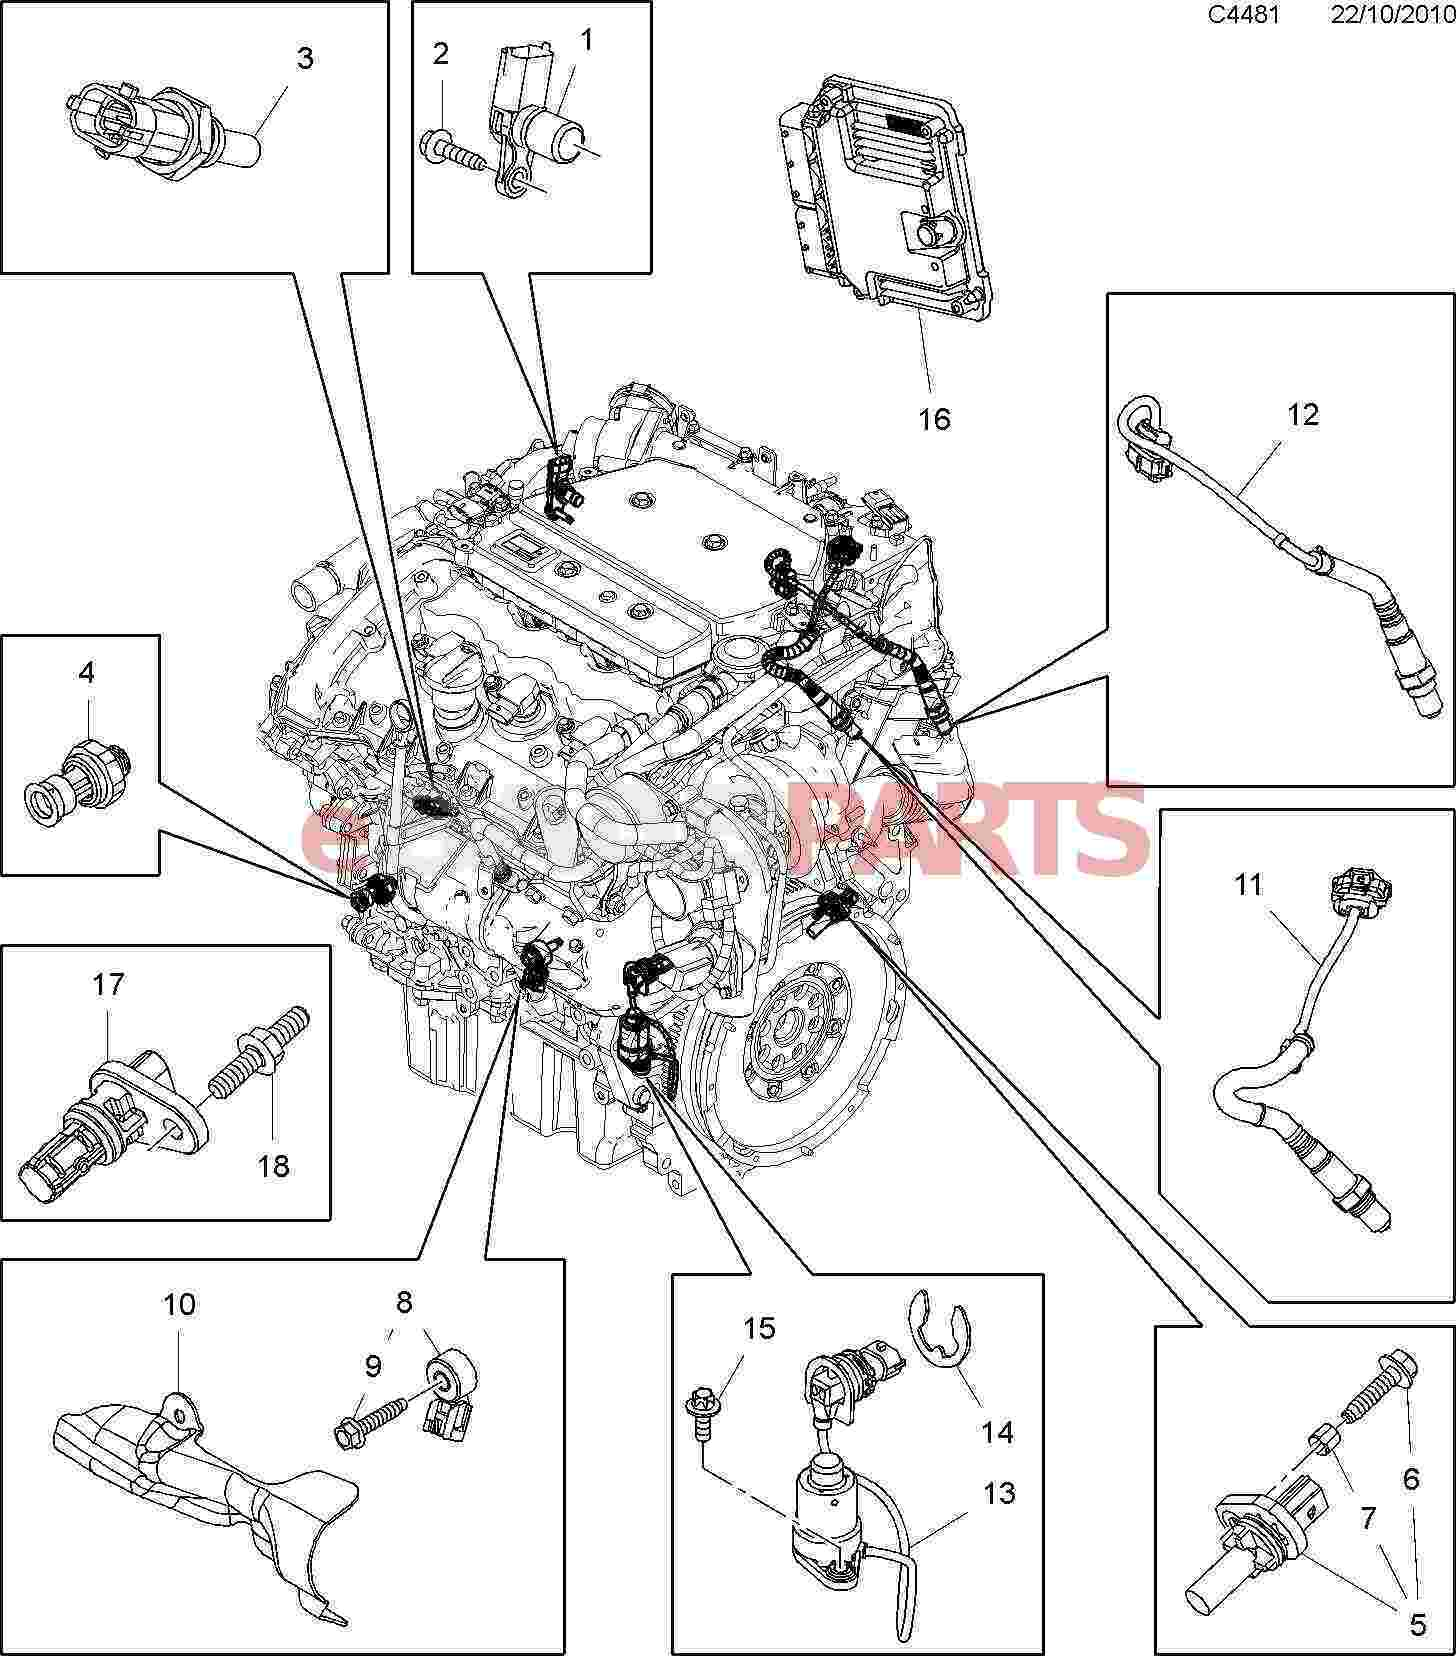 Saab 9 3 Turbo Engine Diagram on 2000 Bmw 323i Parts Diagram